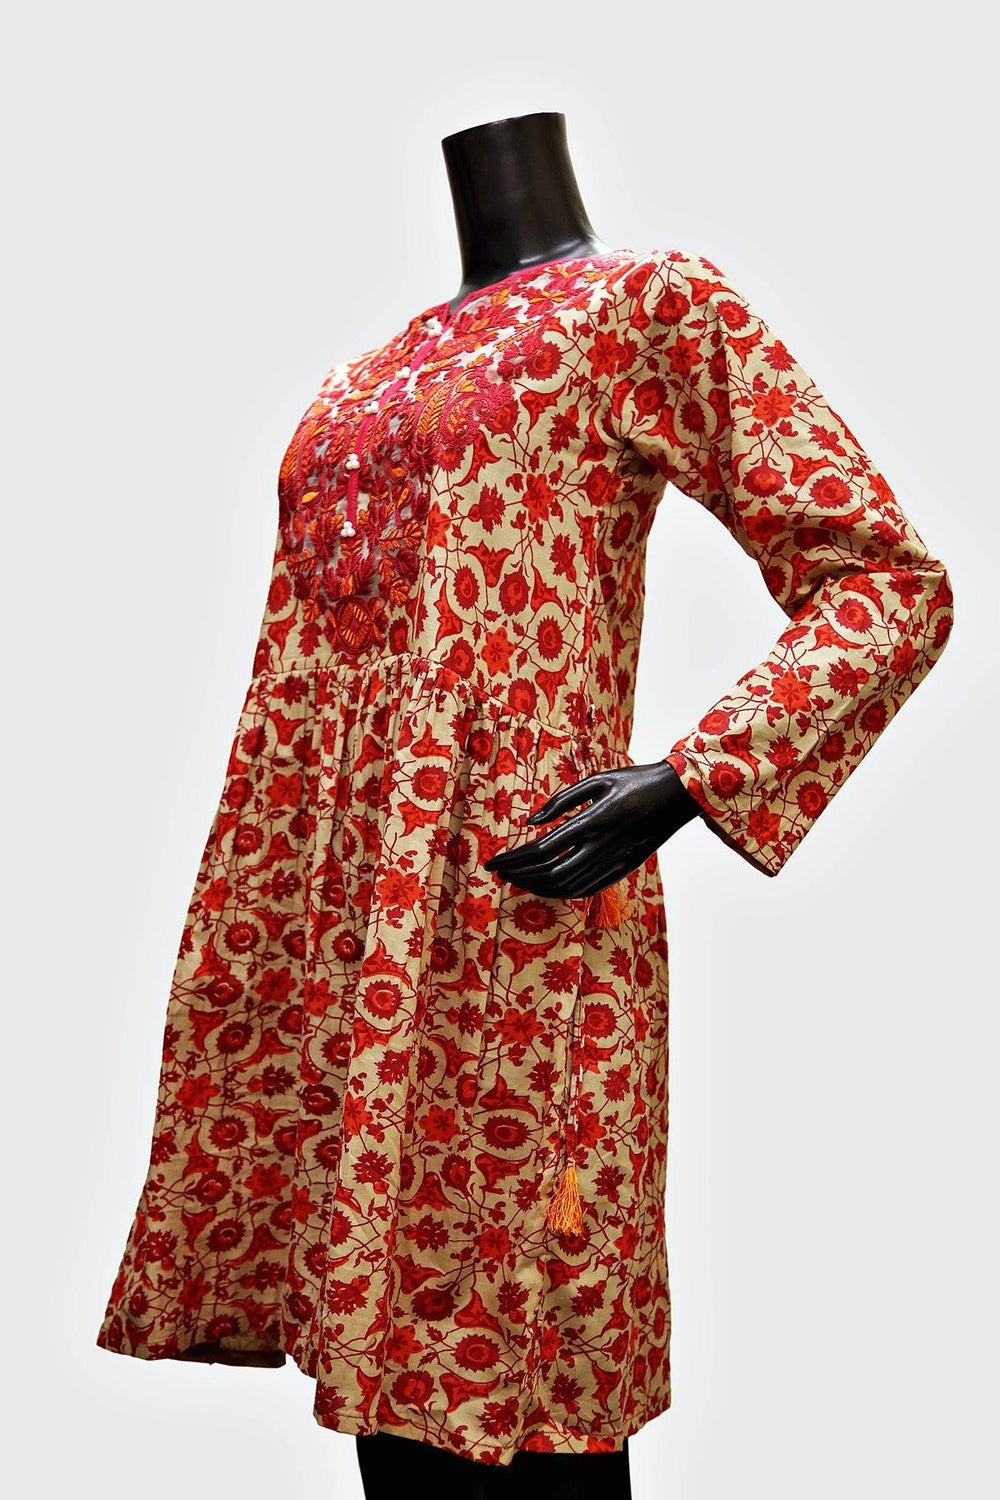 Floral Sheath Lace Neck Kurti - Brandsea UK